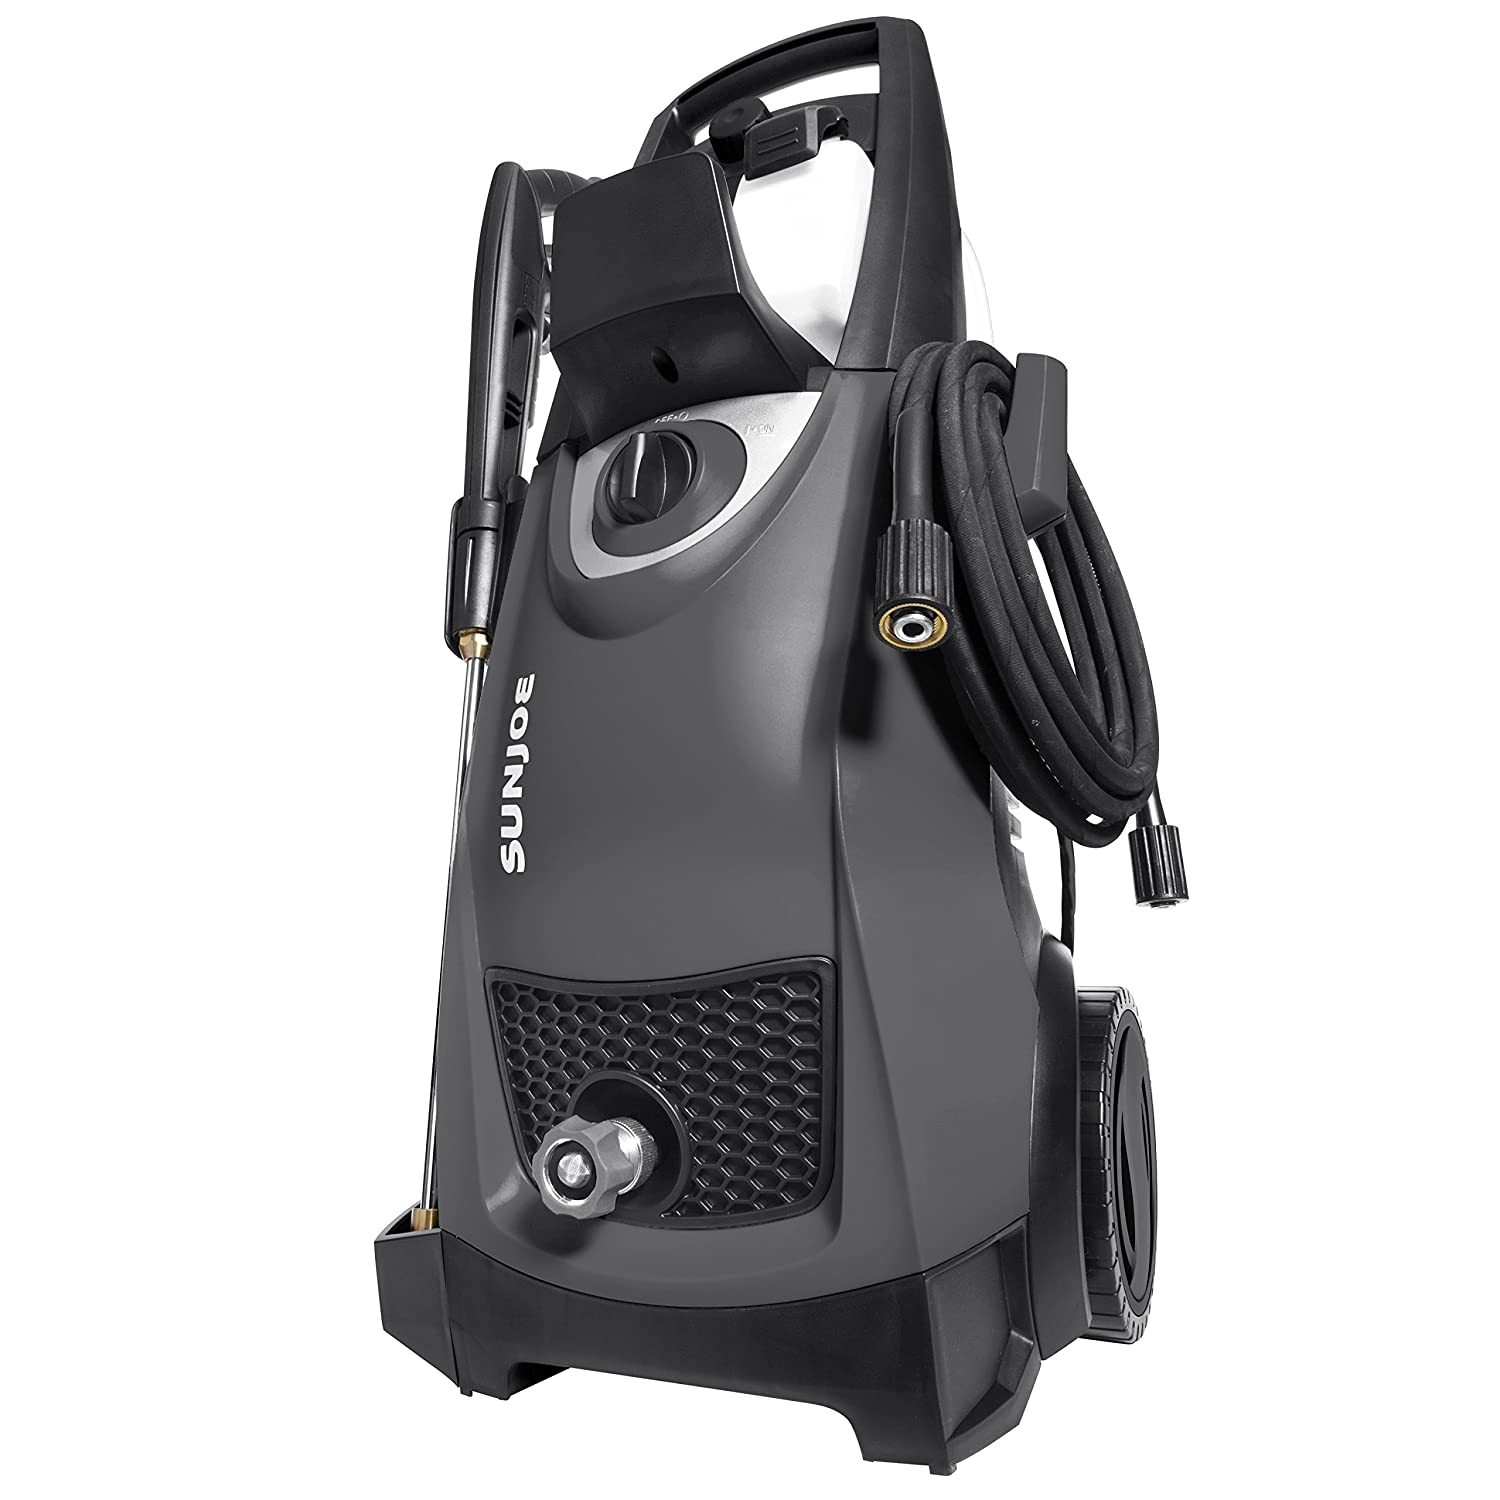 Top 10 Best Electric Pressure Washers